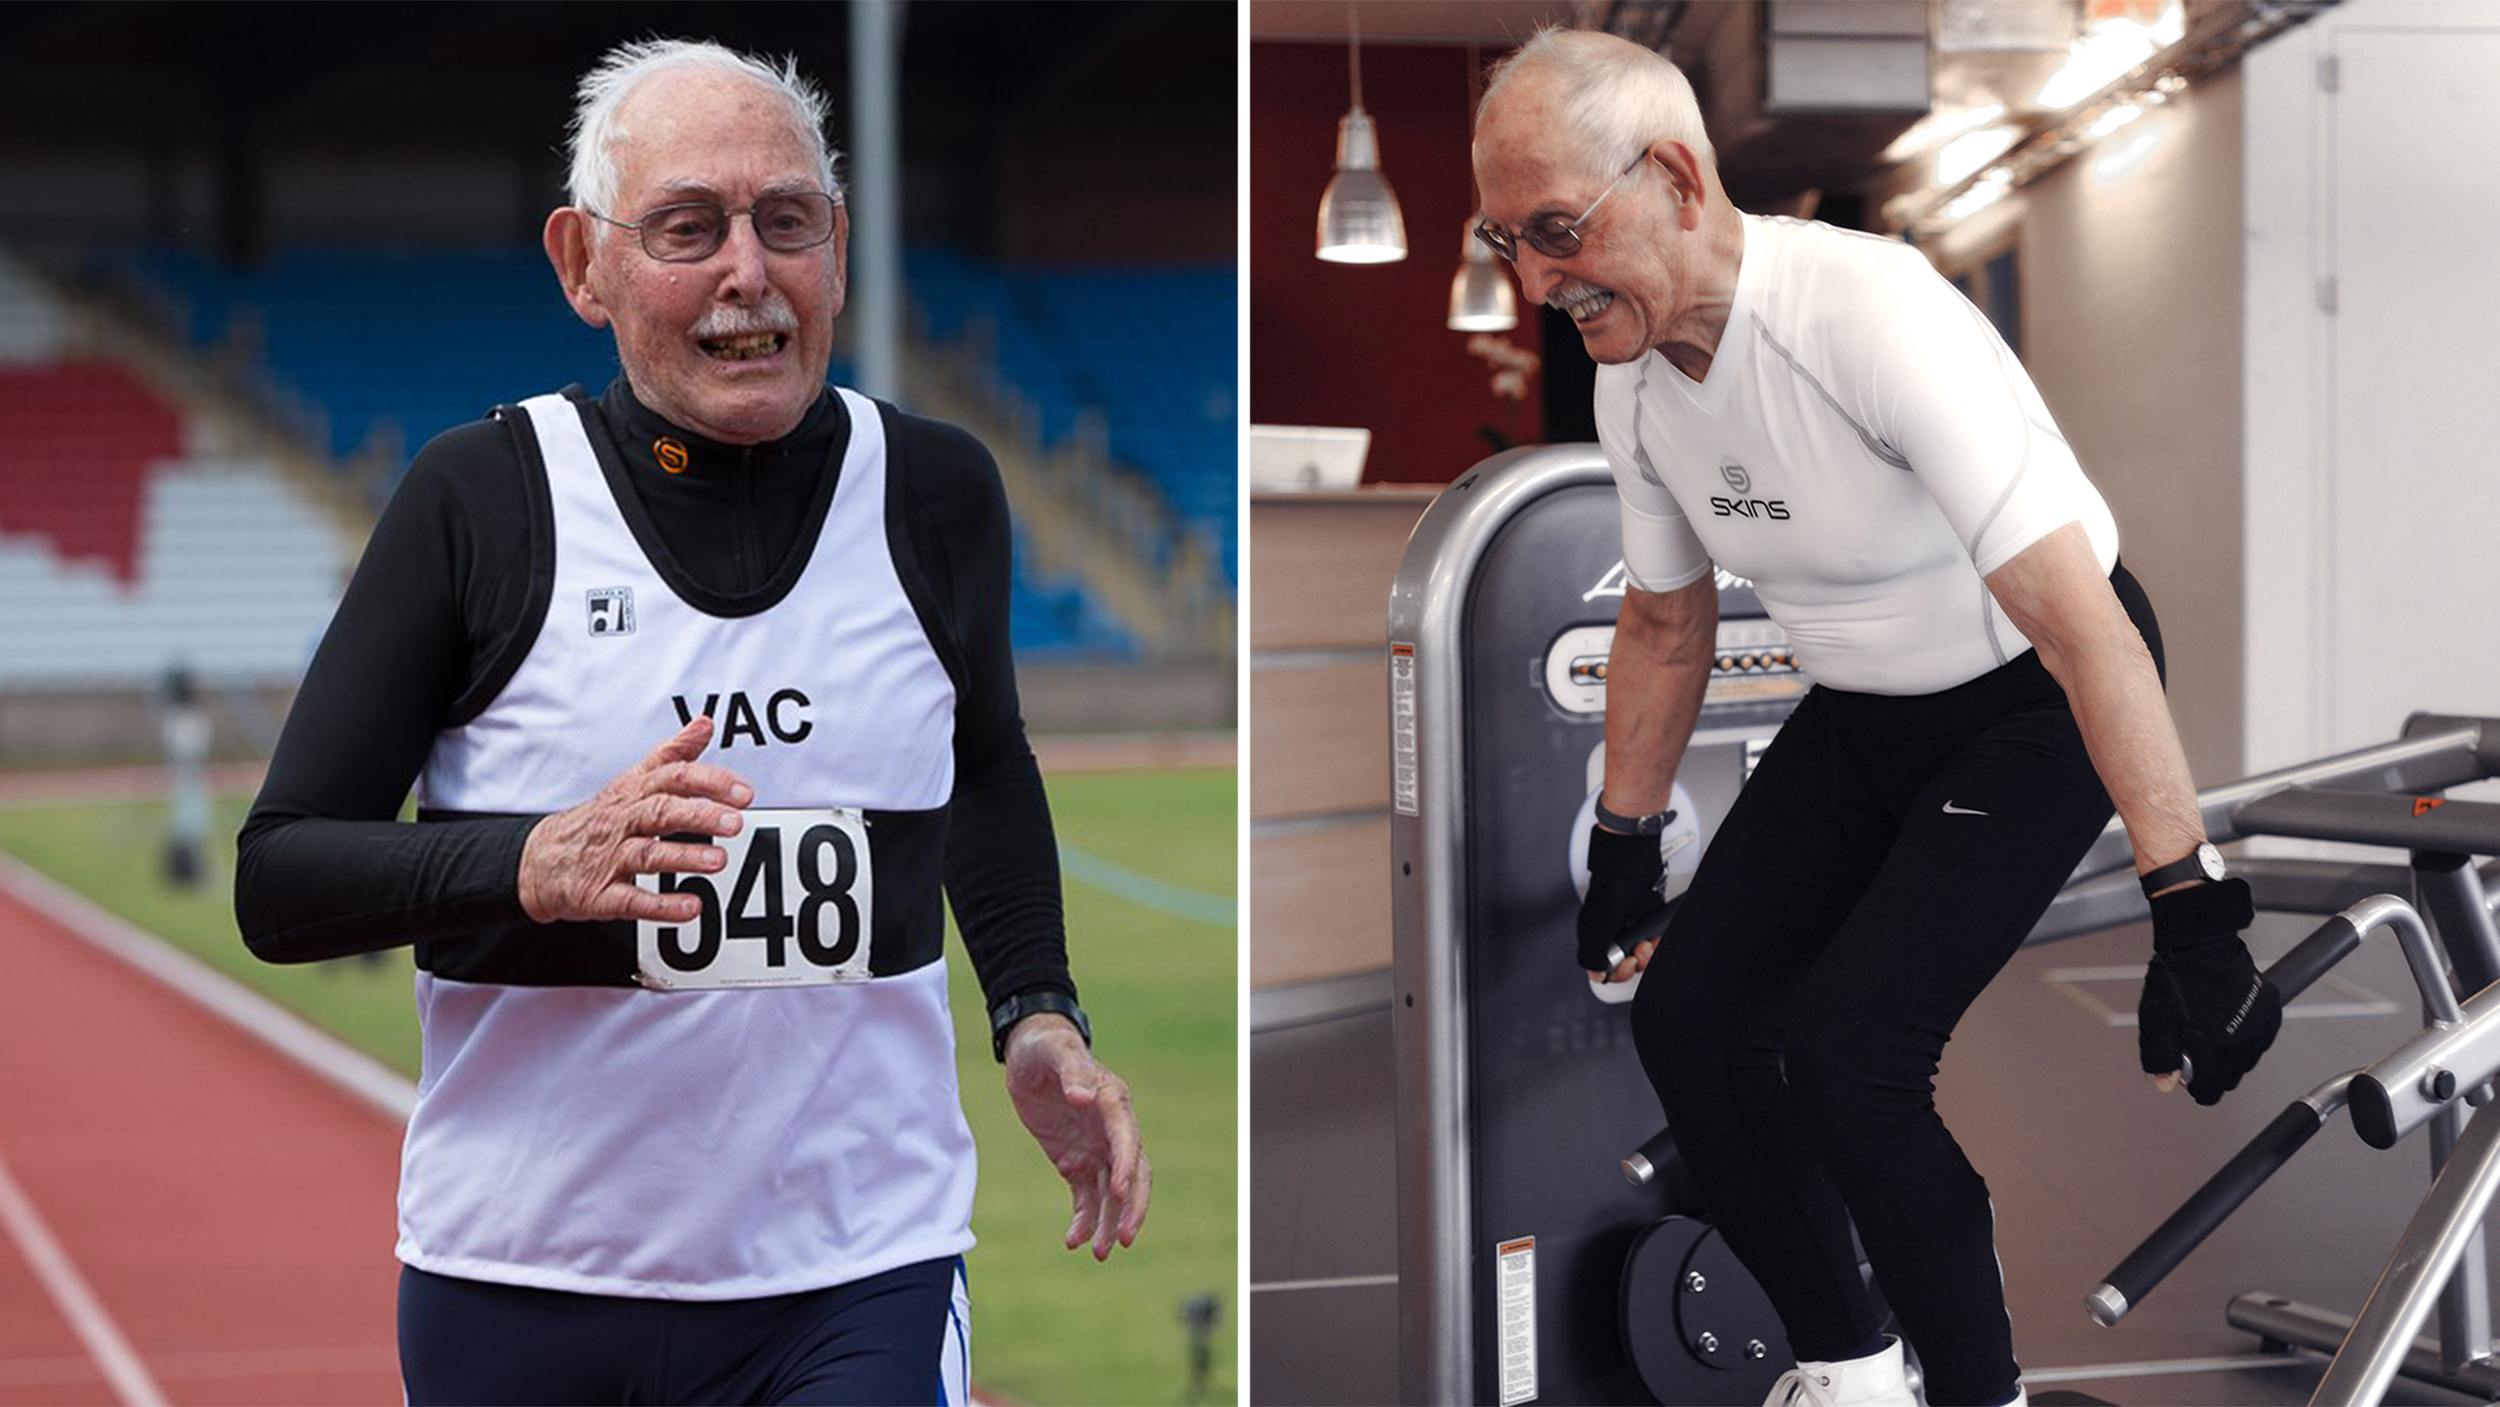 World's fittest 96-year-old, Charles Eugster, shares diet and exercise tips